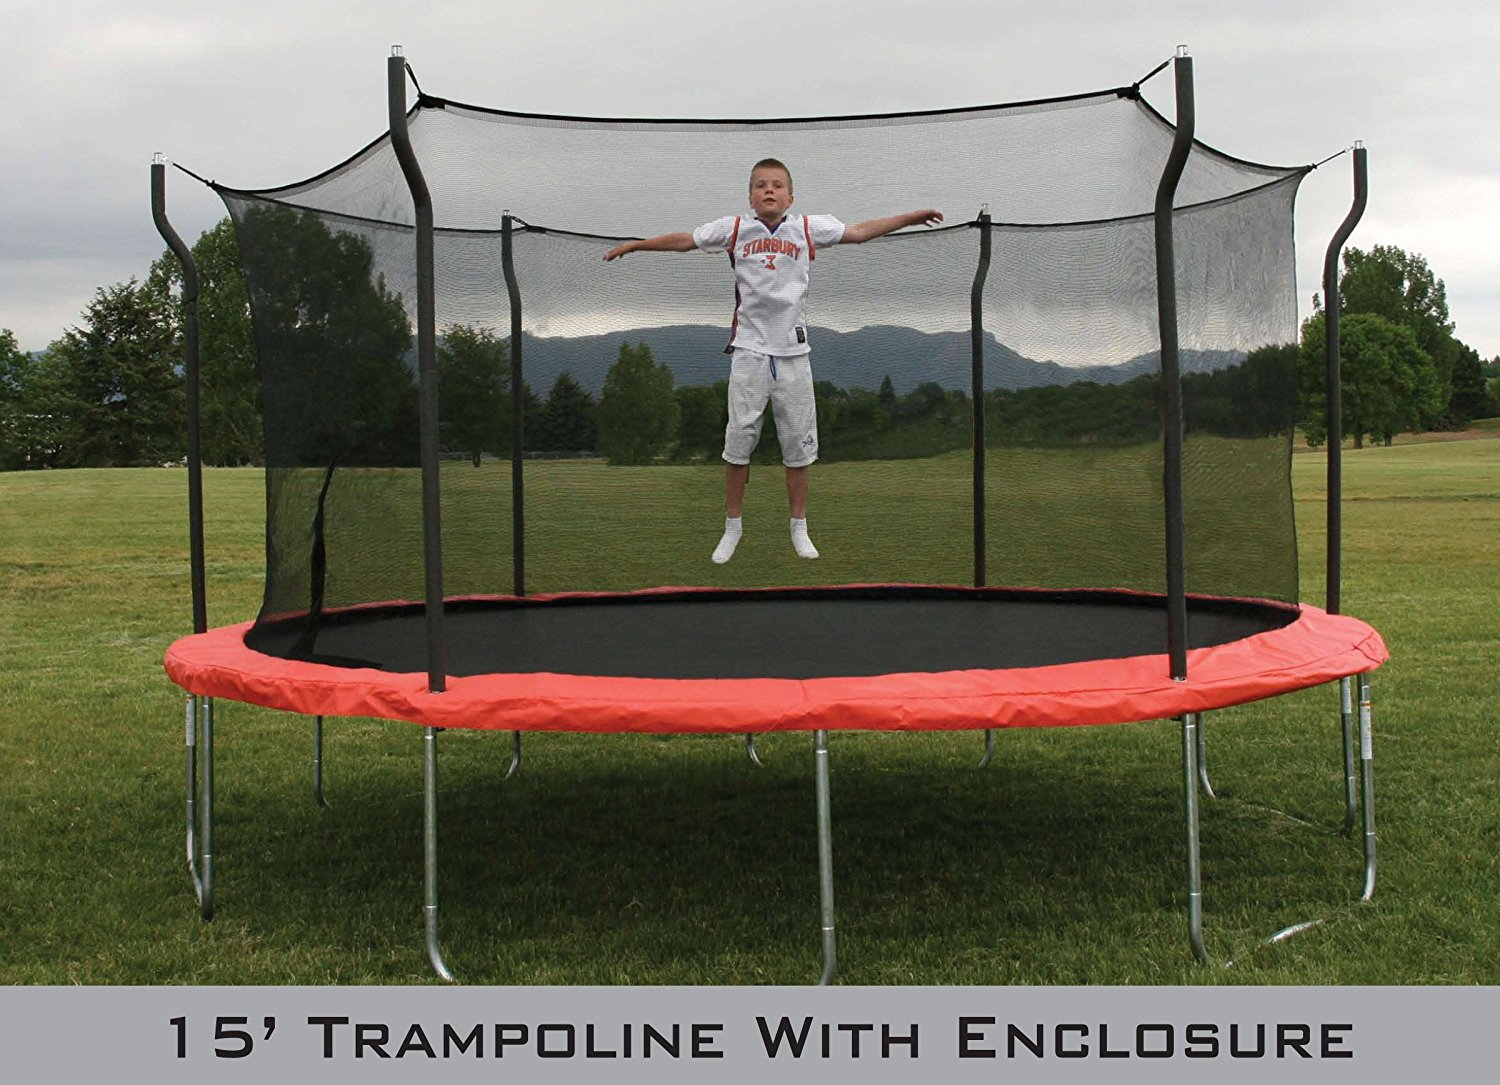 Young boy jumps on 15 foot trampoline with enclosure in grassy field